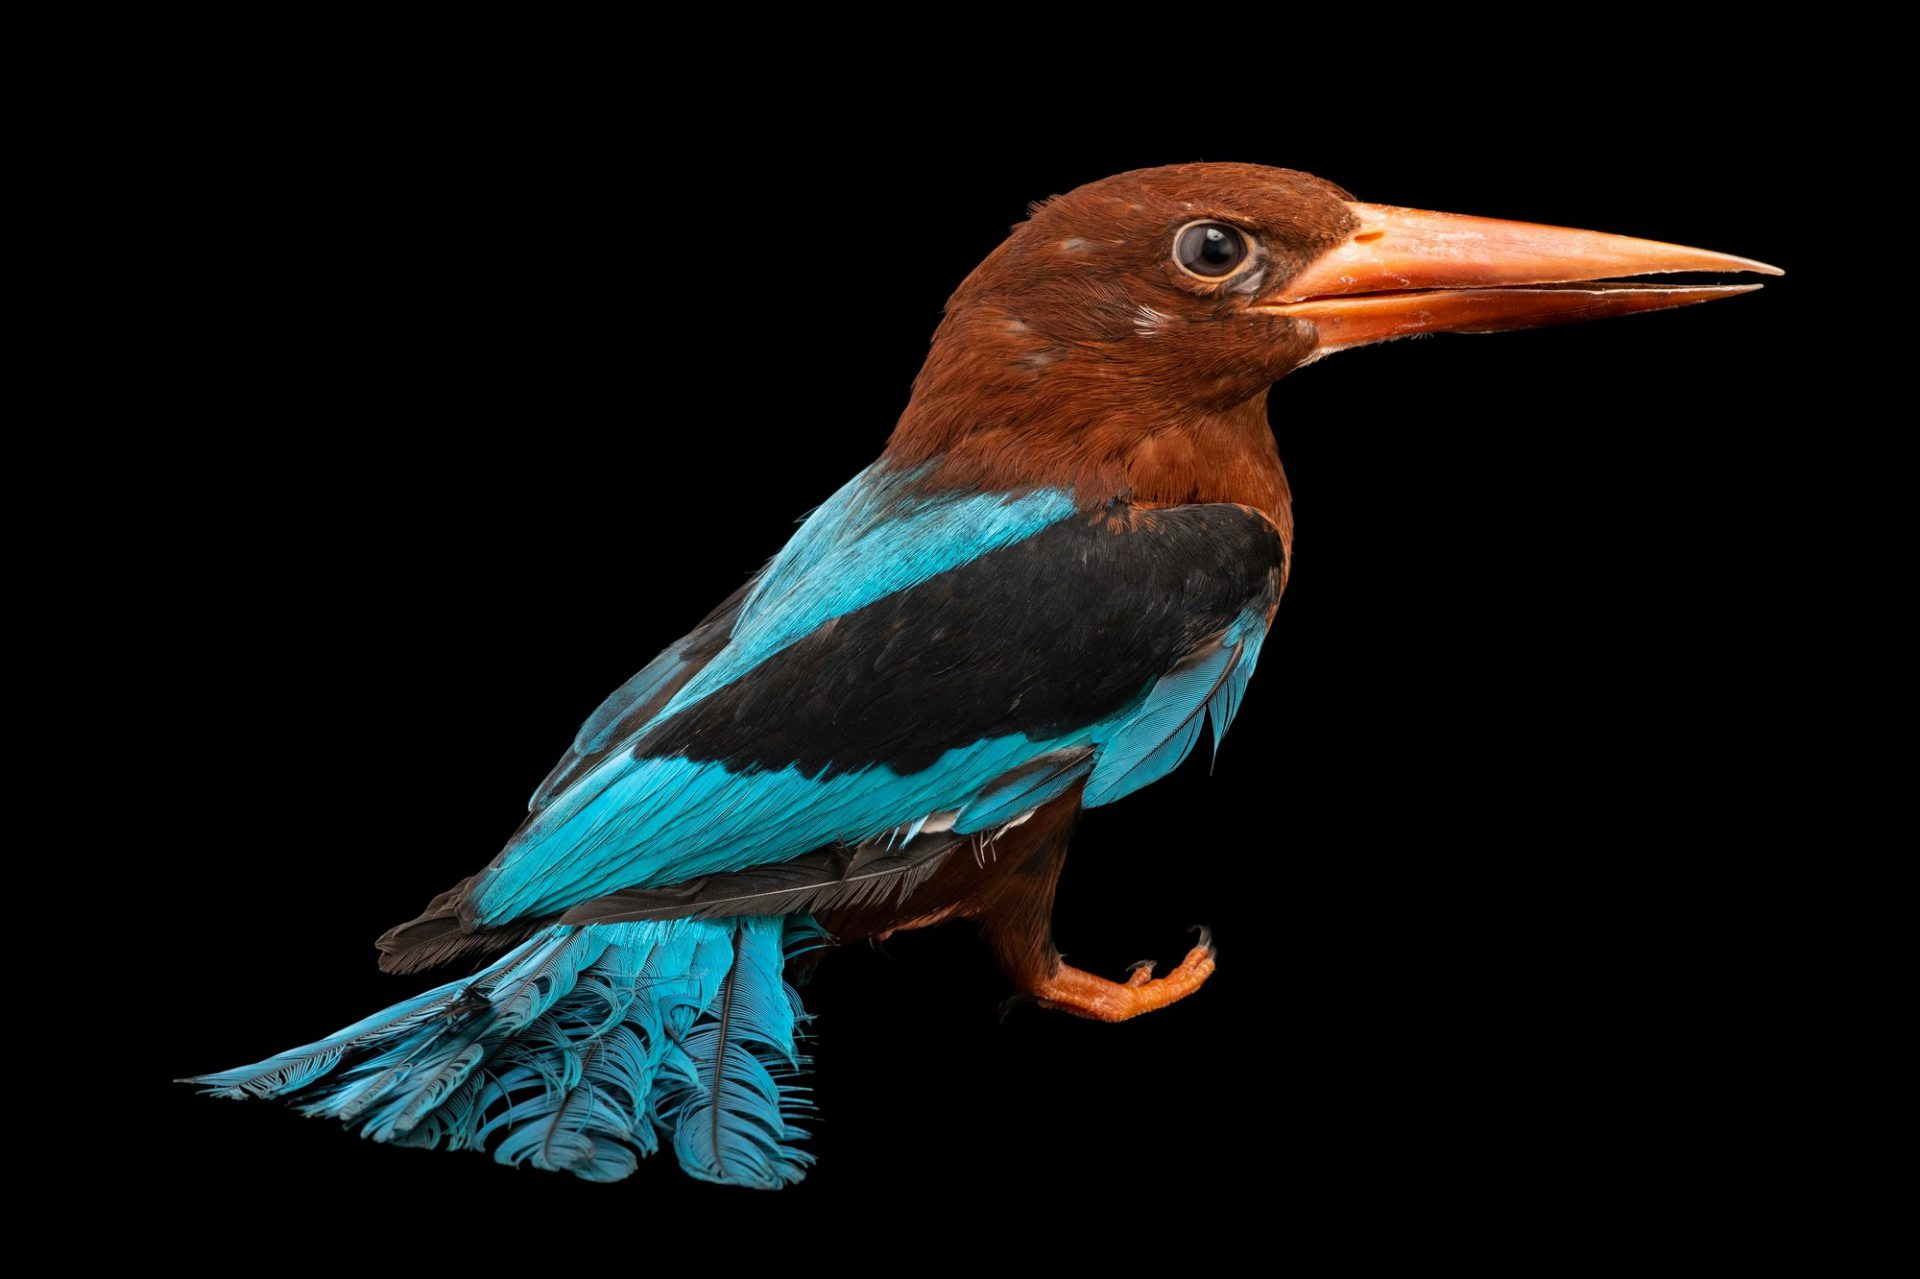 Photo: A white-throated kingfisher (Halcyon gularis) at the Avilon Zoo.